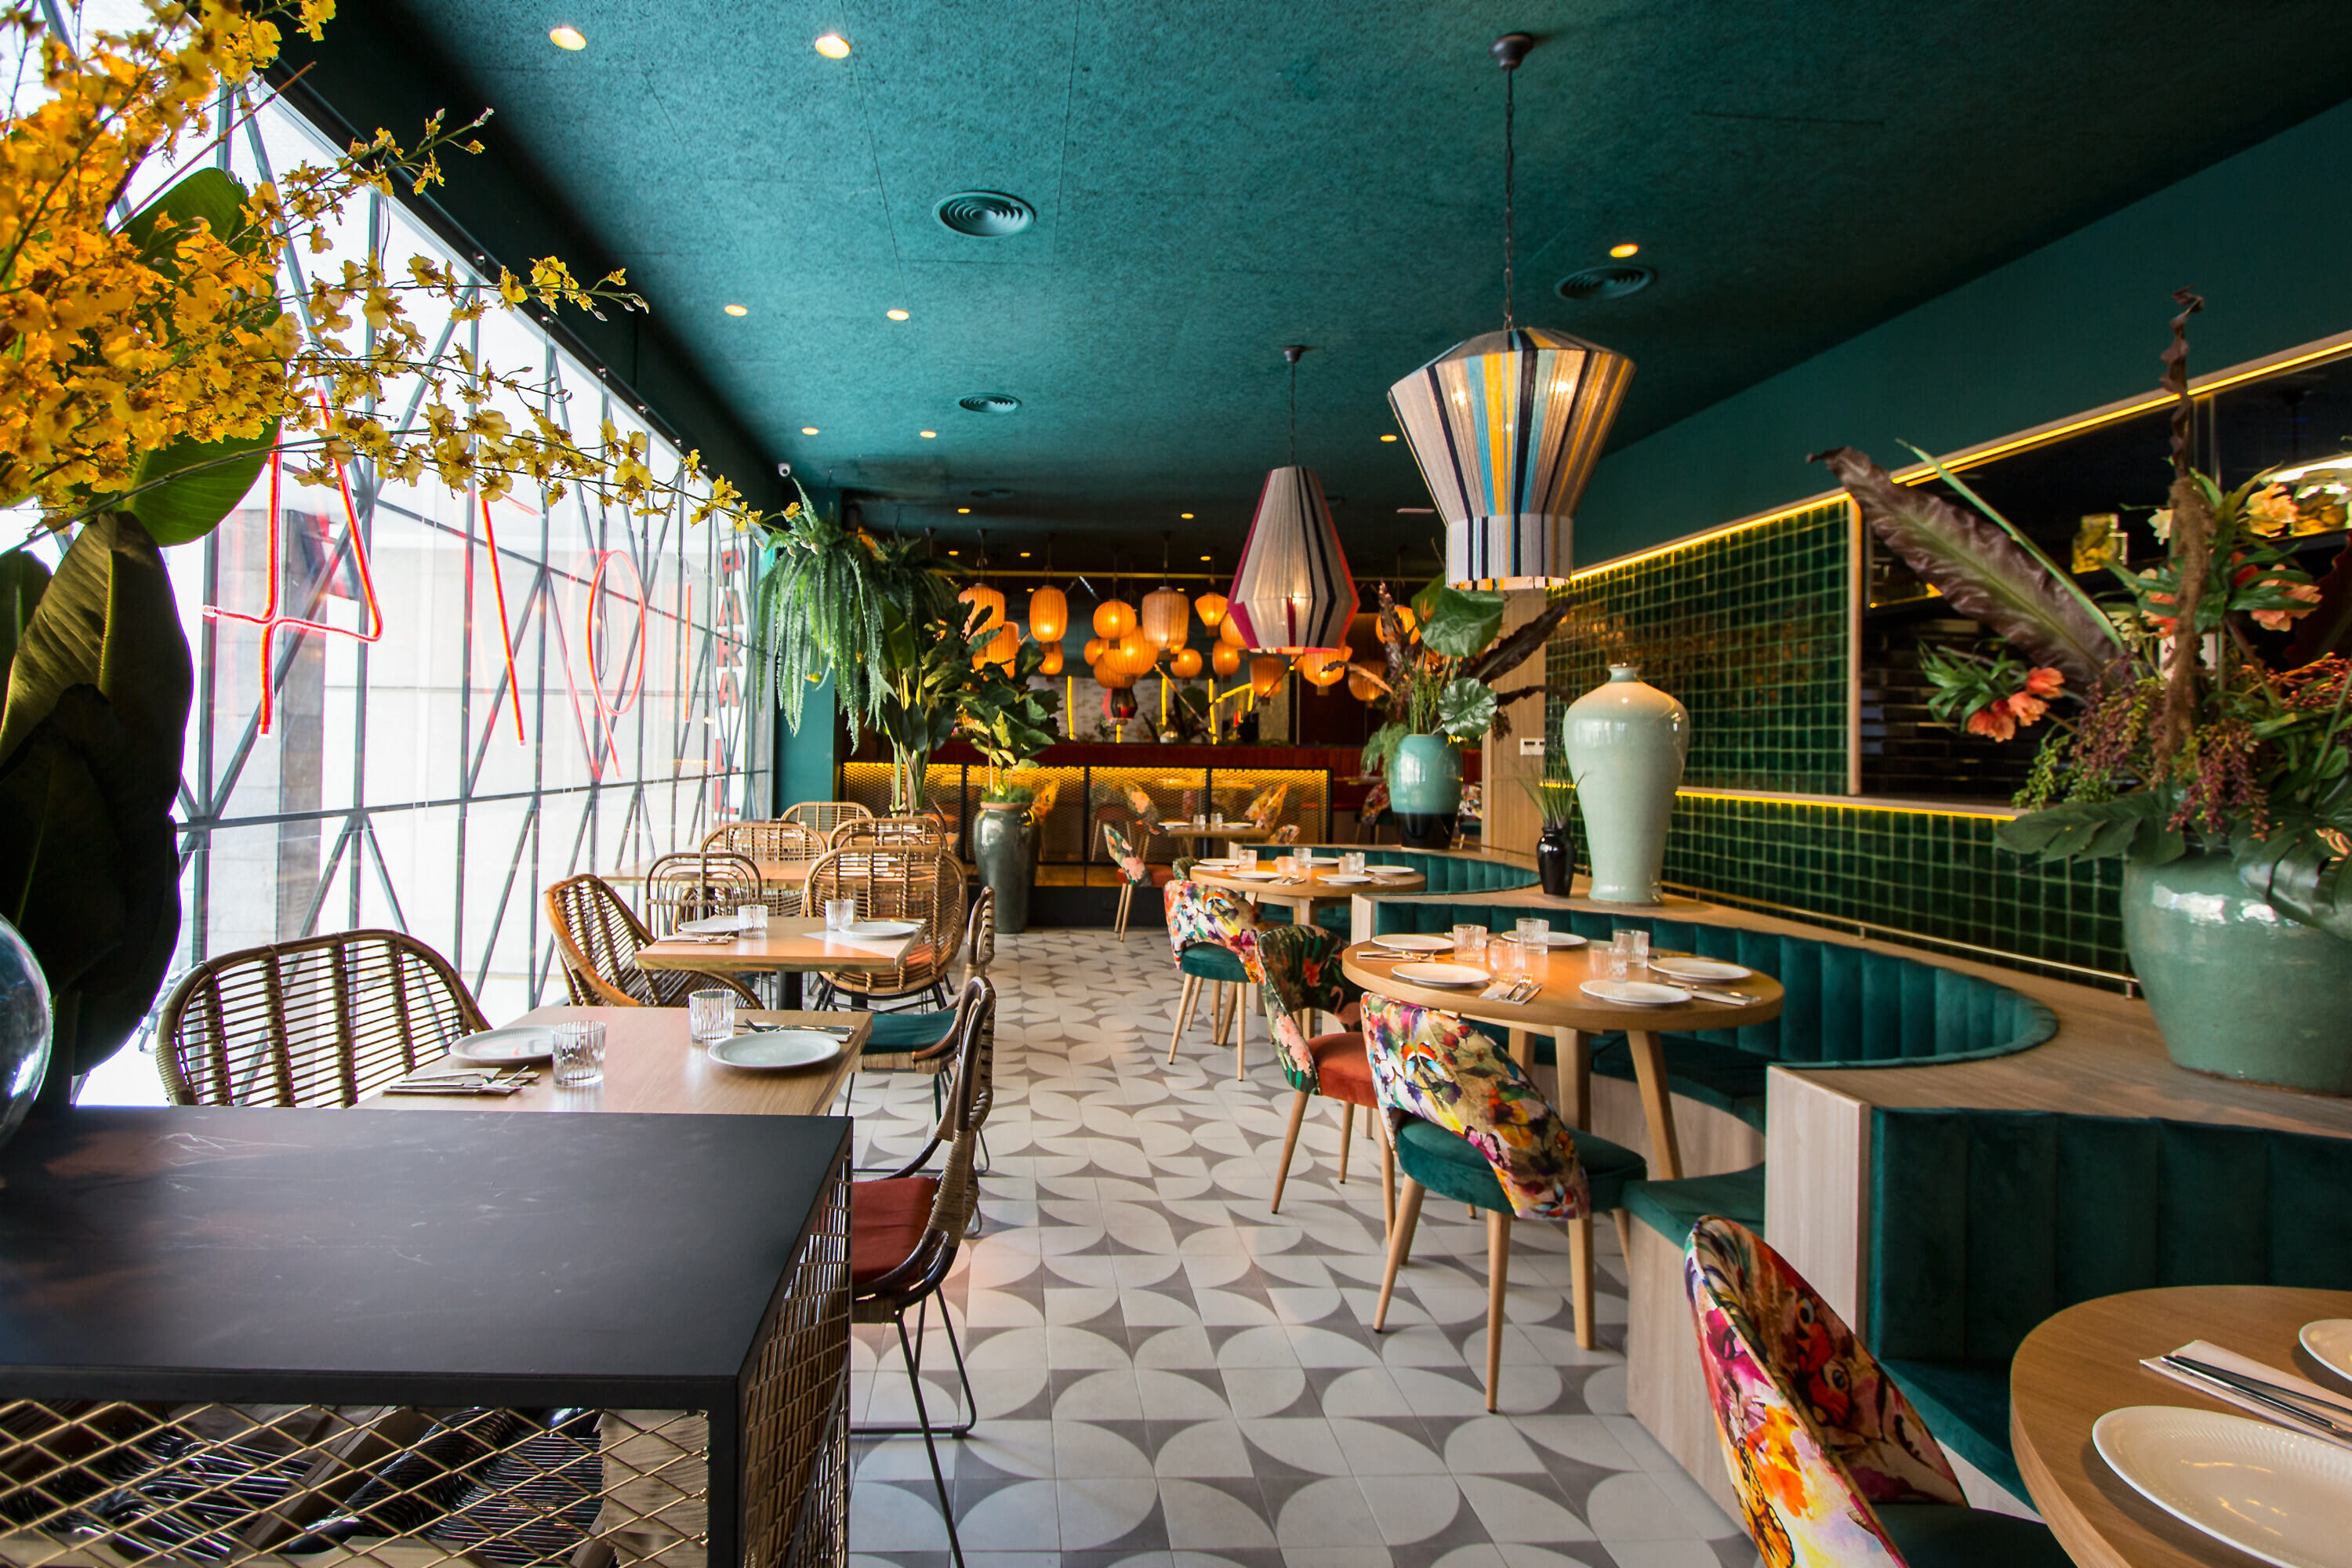 The New Restaurants Of 2018 In Madrid Unmissable For Foodies